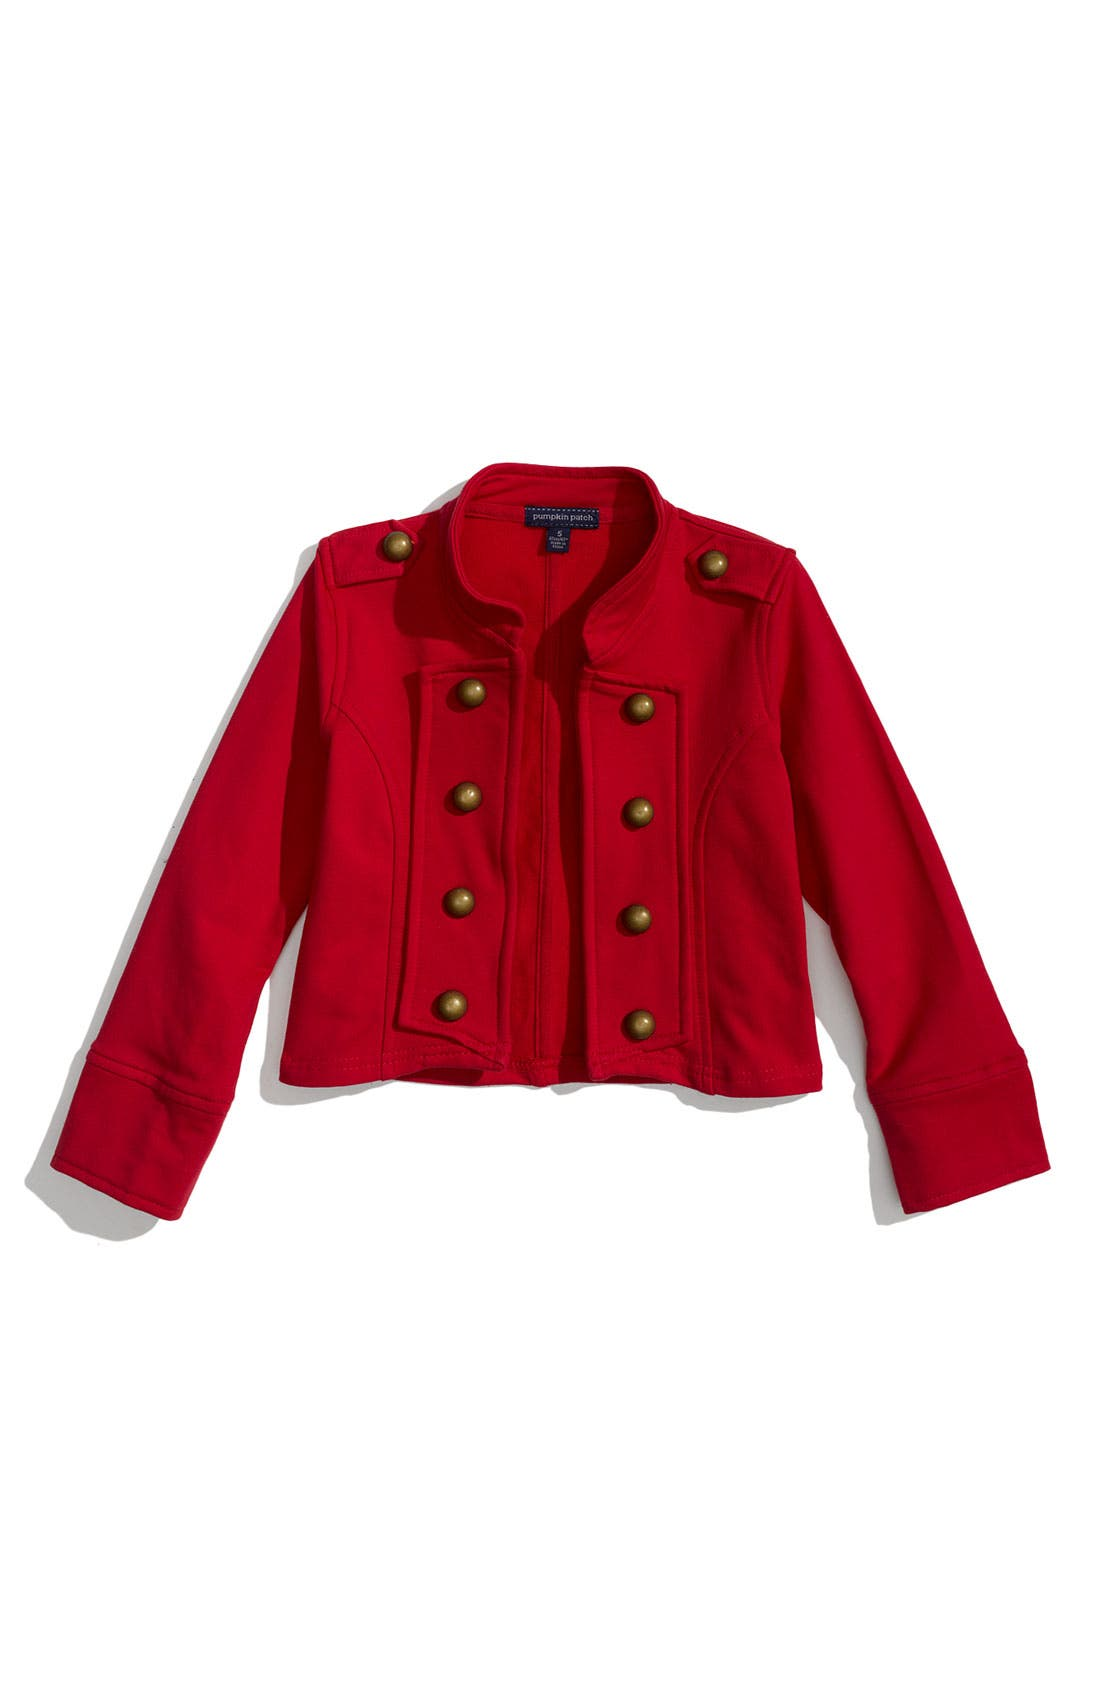 Alternate Image 1 Selected - Pumpkin Patch Stretch Cotton Military Jacket (Little Girls)